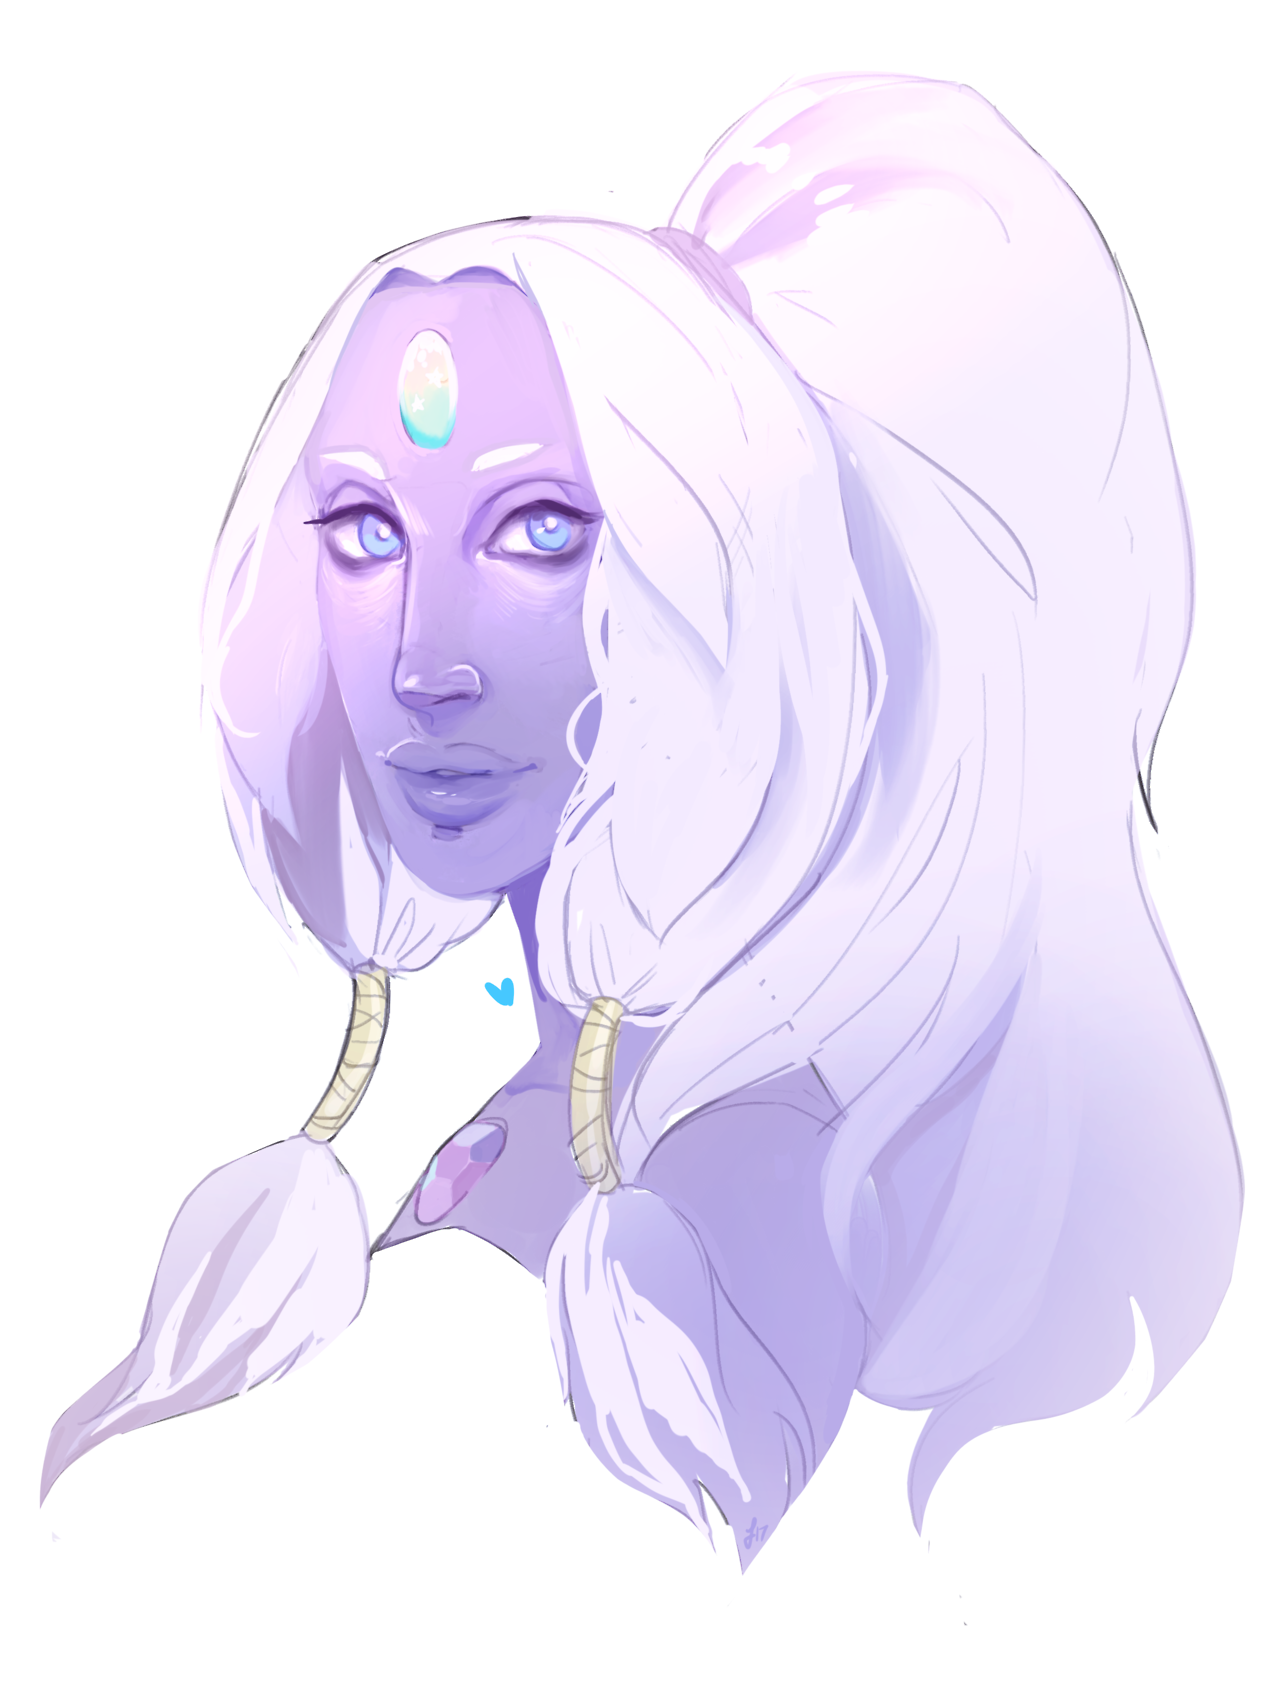 opal sketch before i leave the house ☼